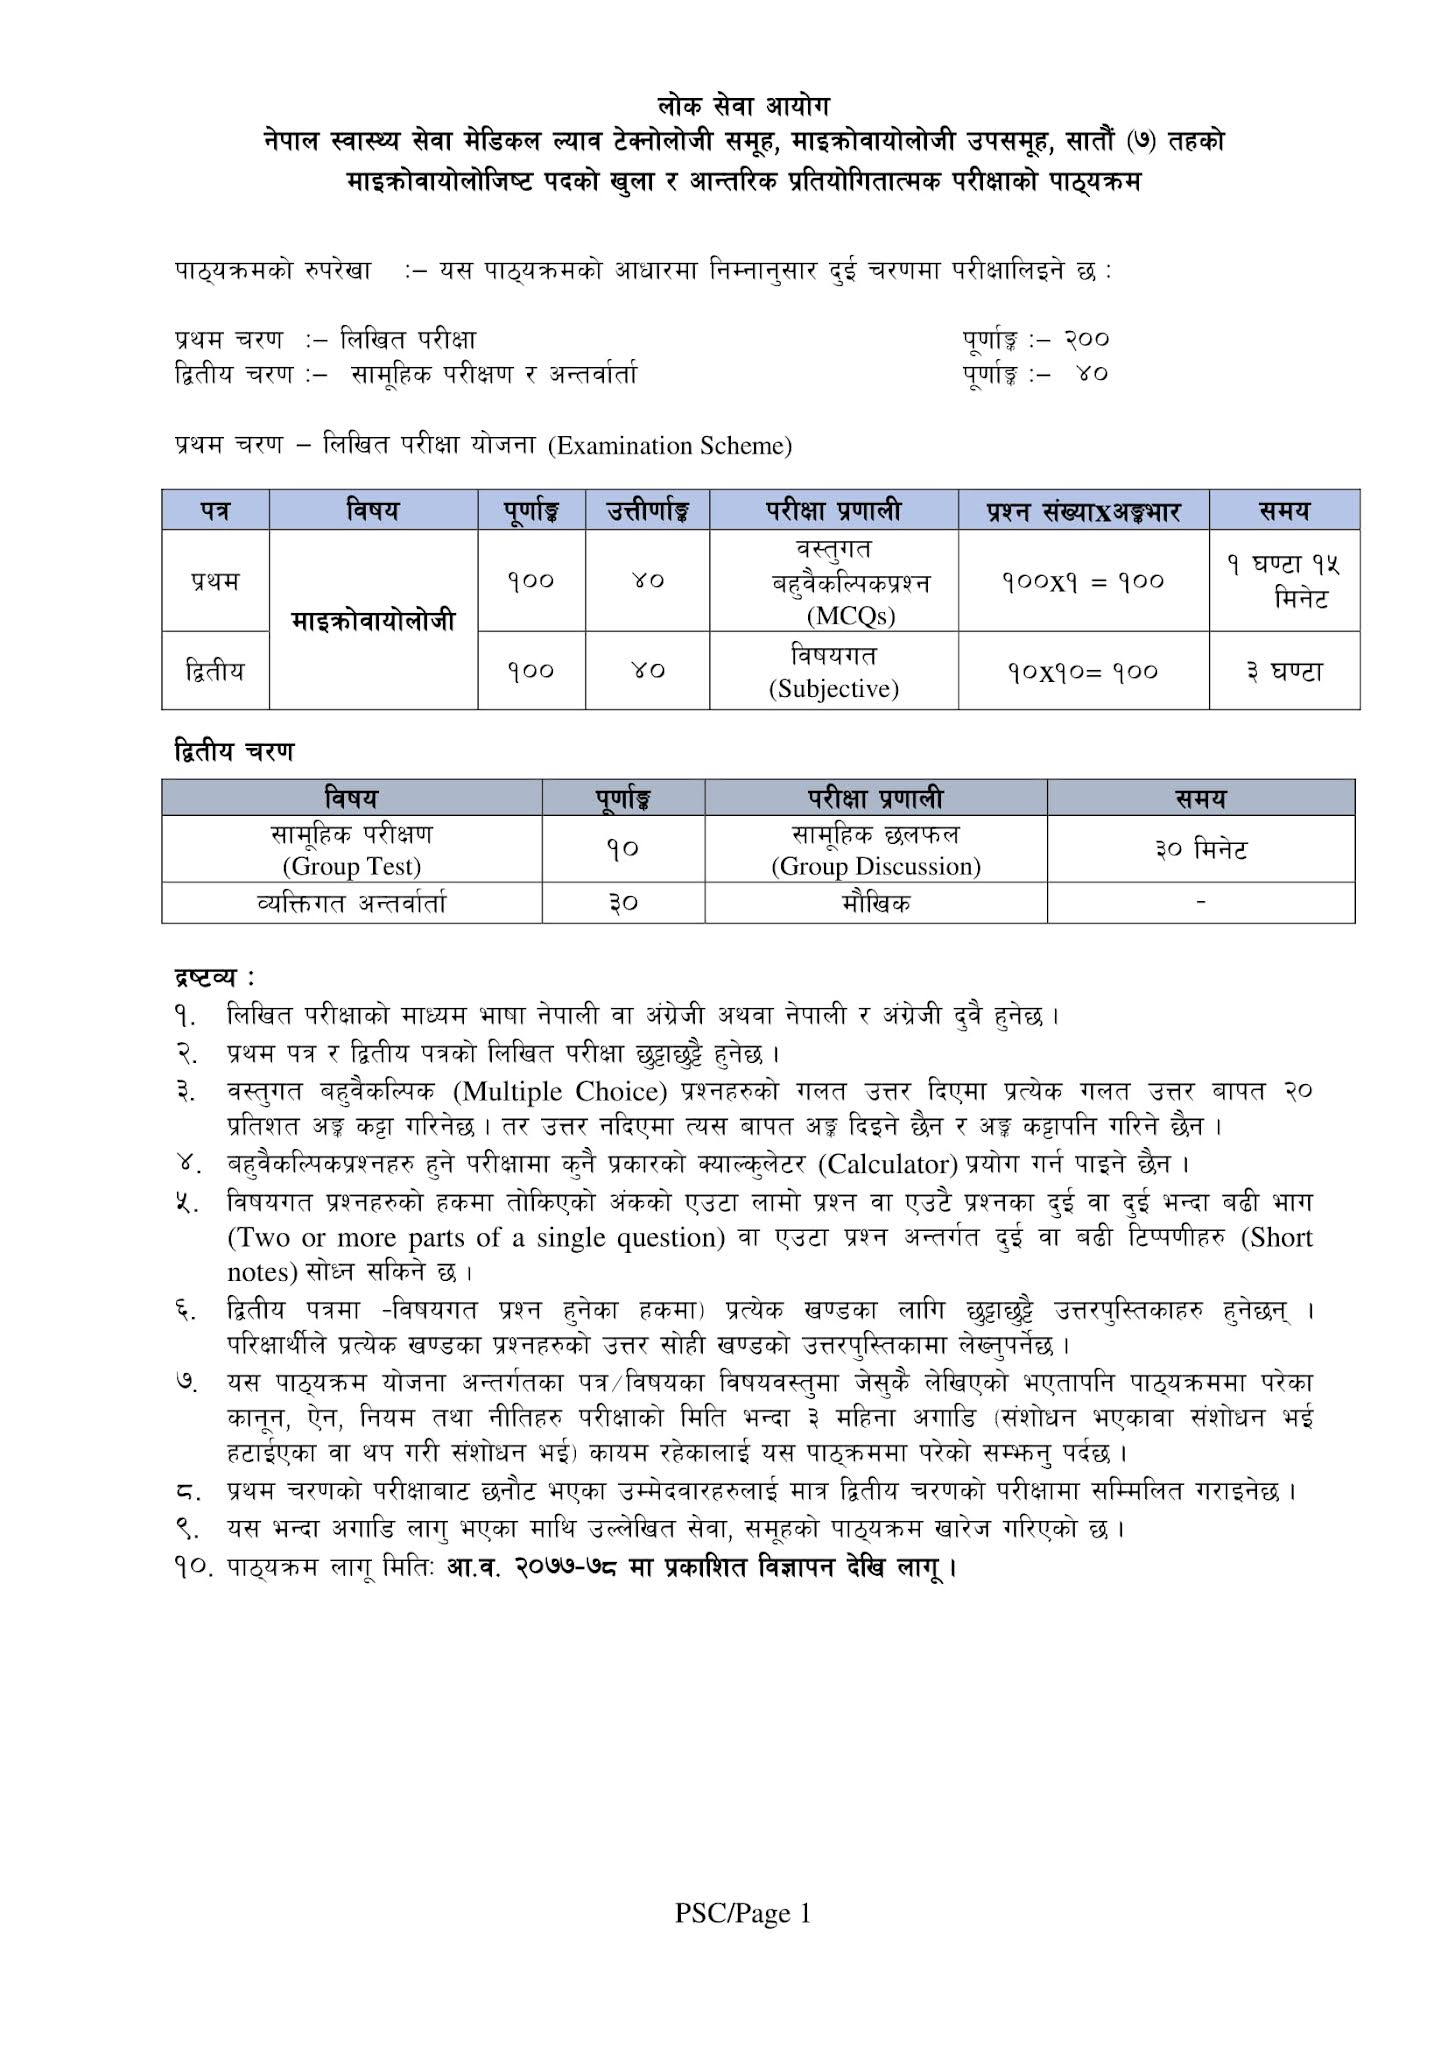 PSC Syllabus for Microbiologist 7th Level